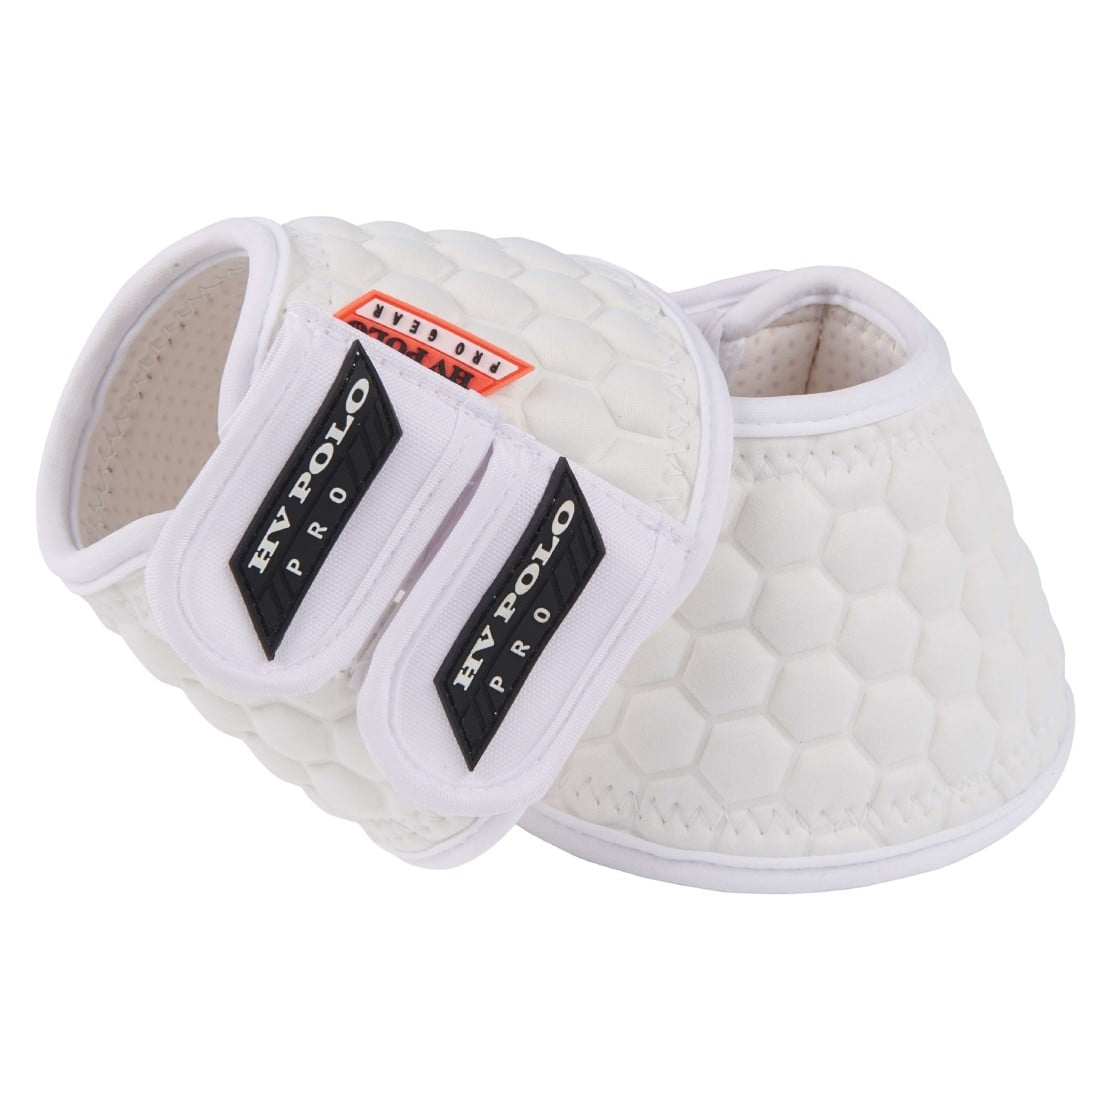 Hufglocken Rubels VB White